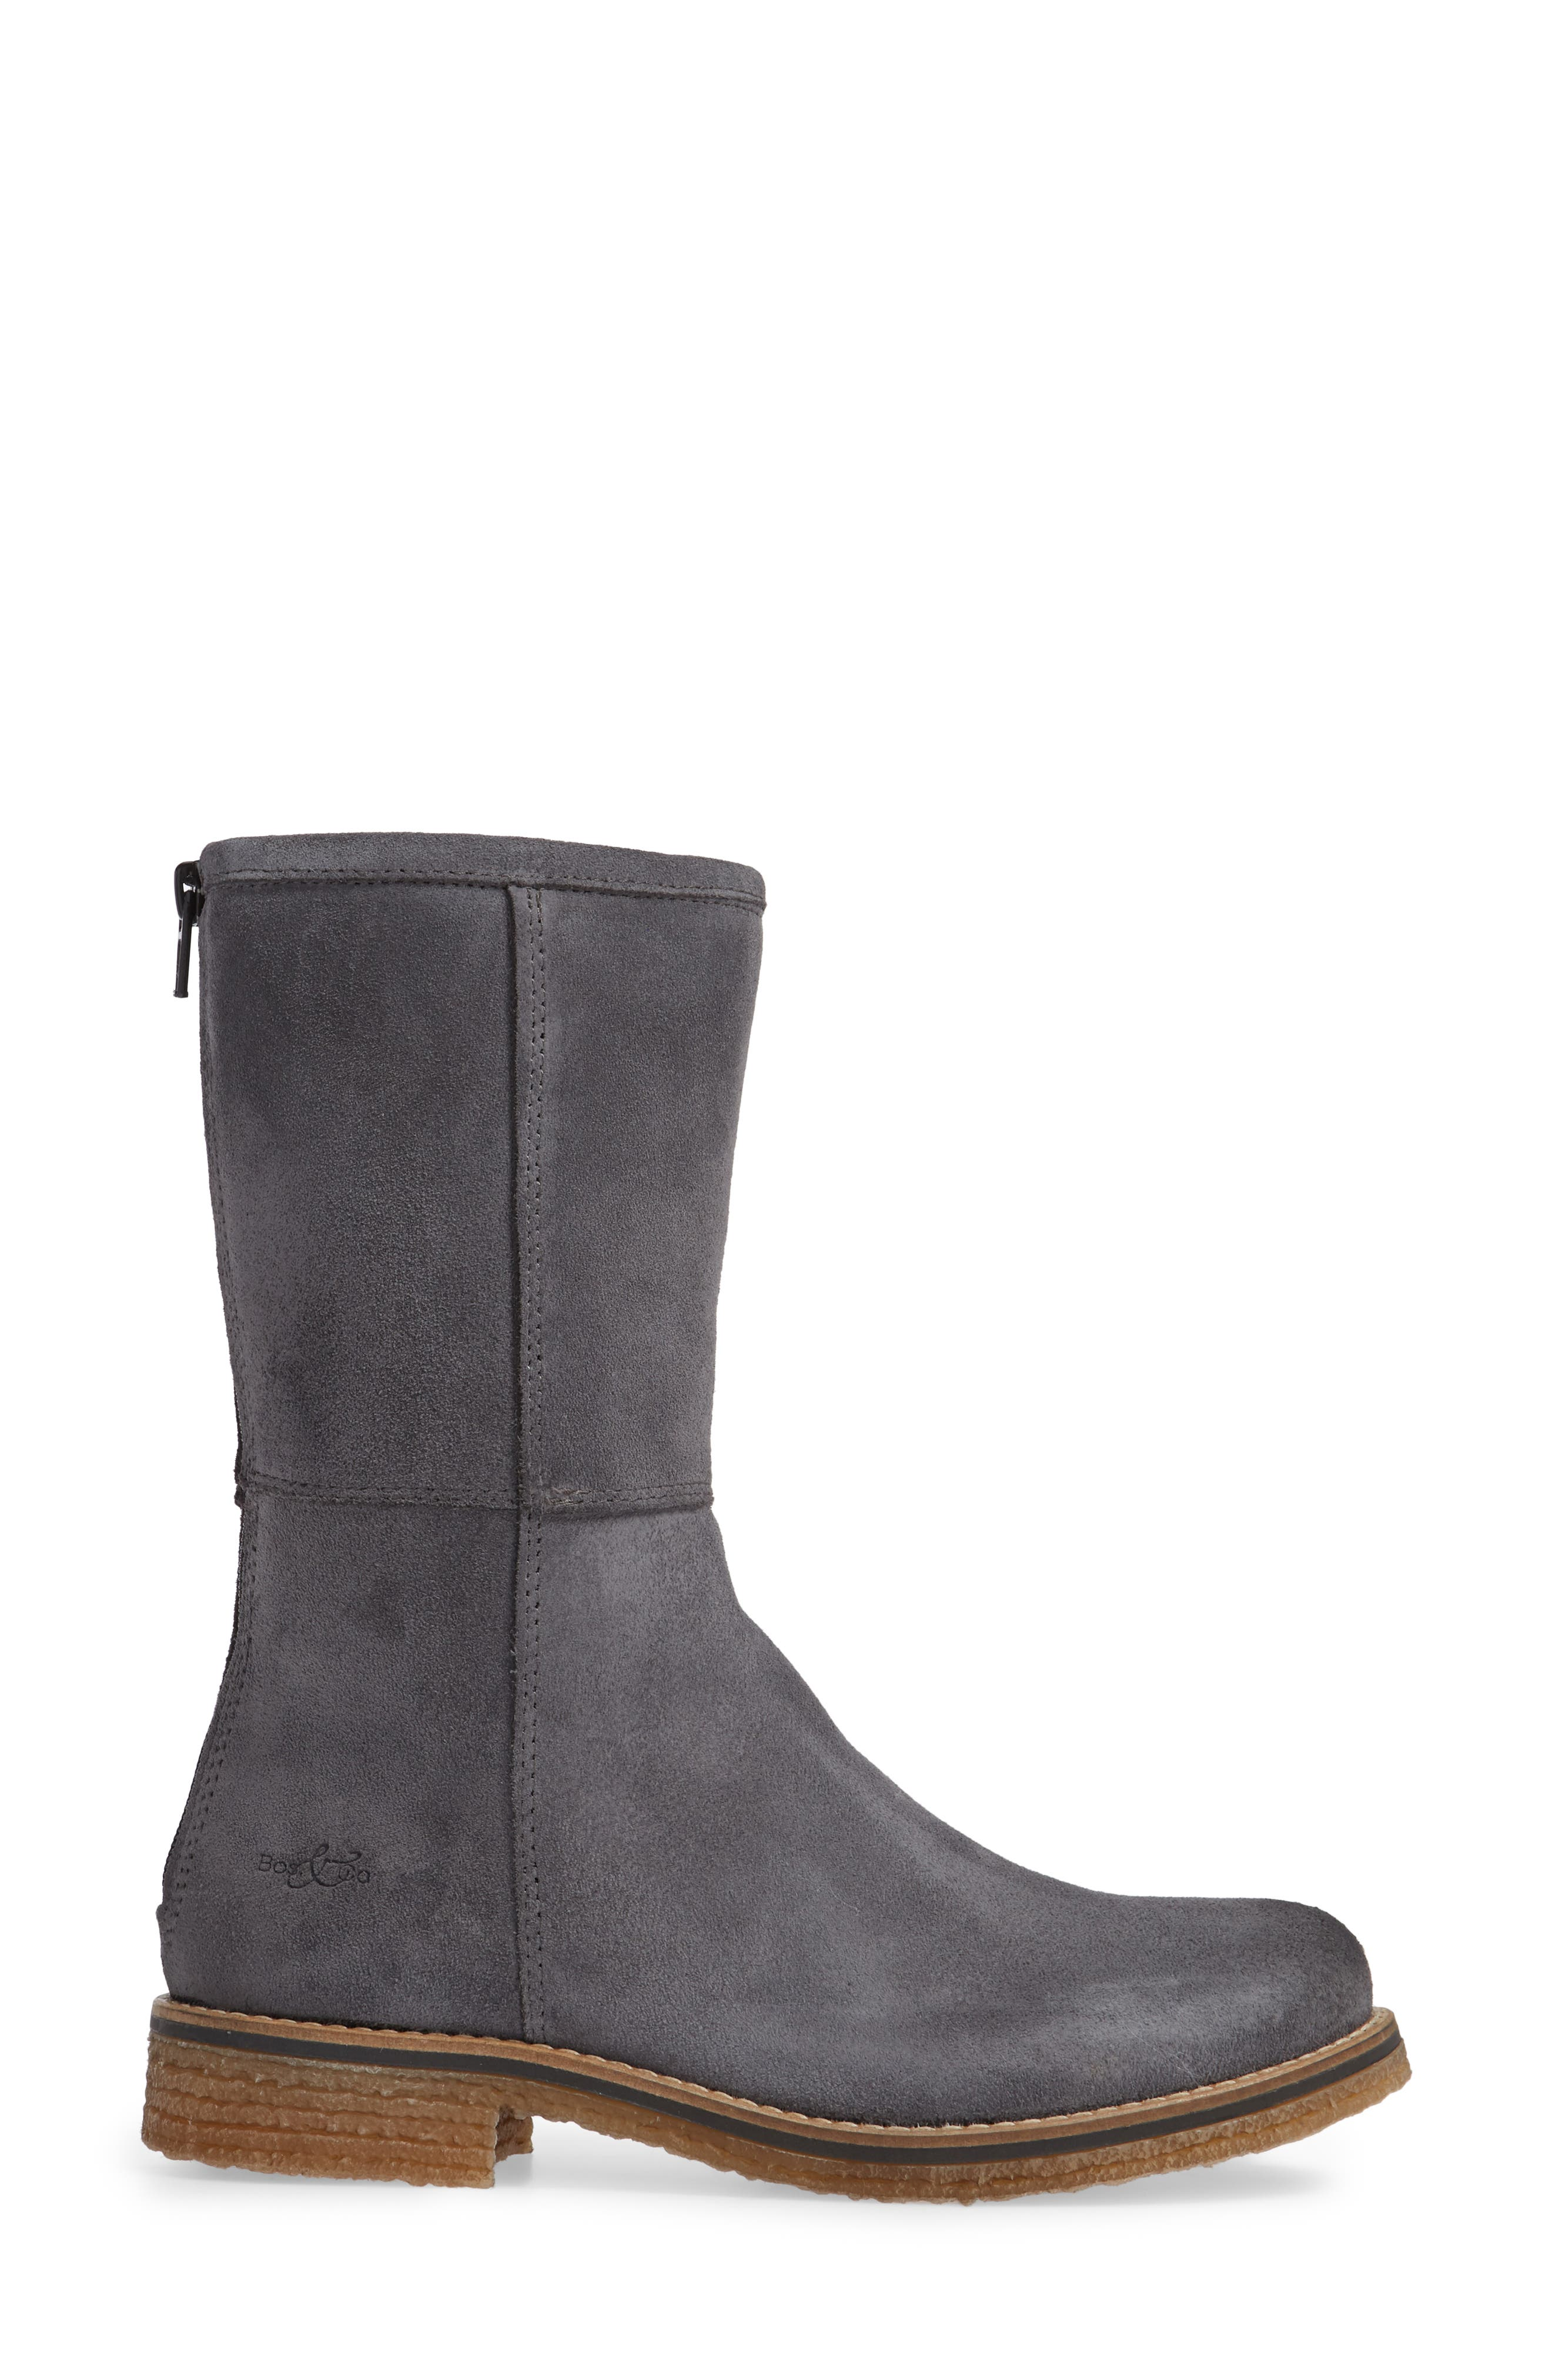 BOS. & CO., Bell Waterproof Winter Boot, Alternate thumbnail 3, color, GREY SUEDE